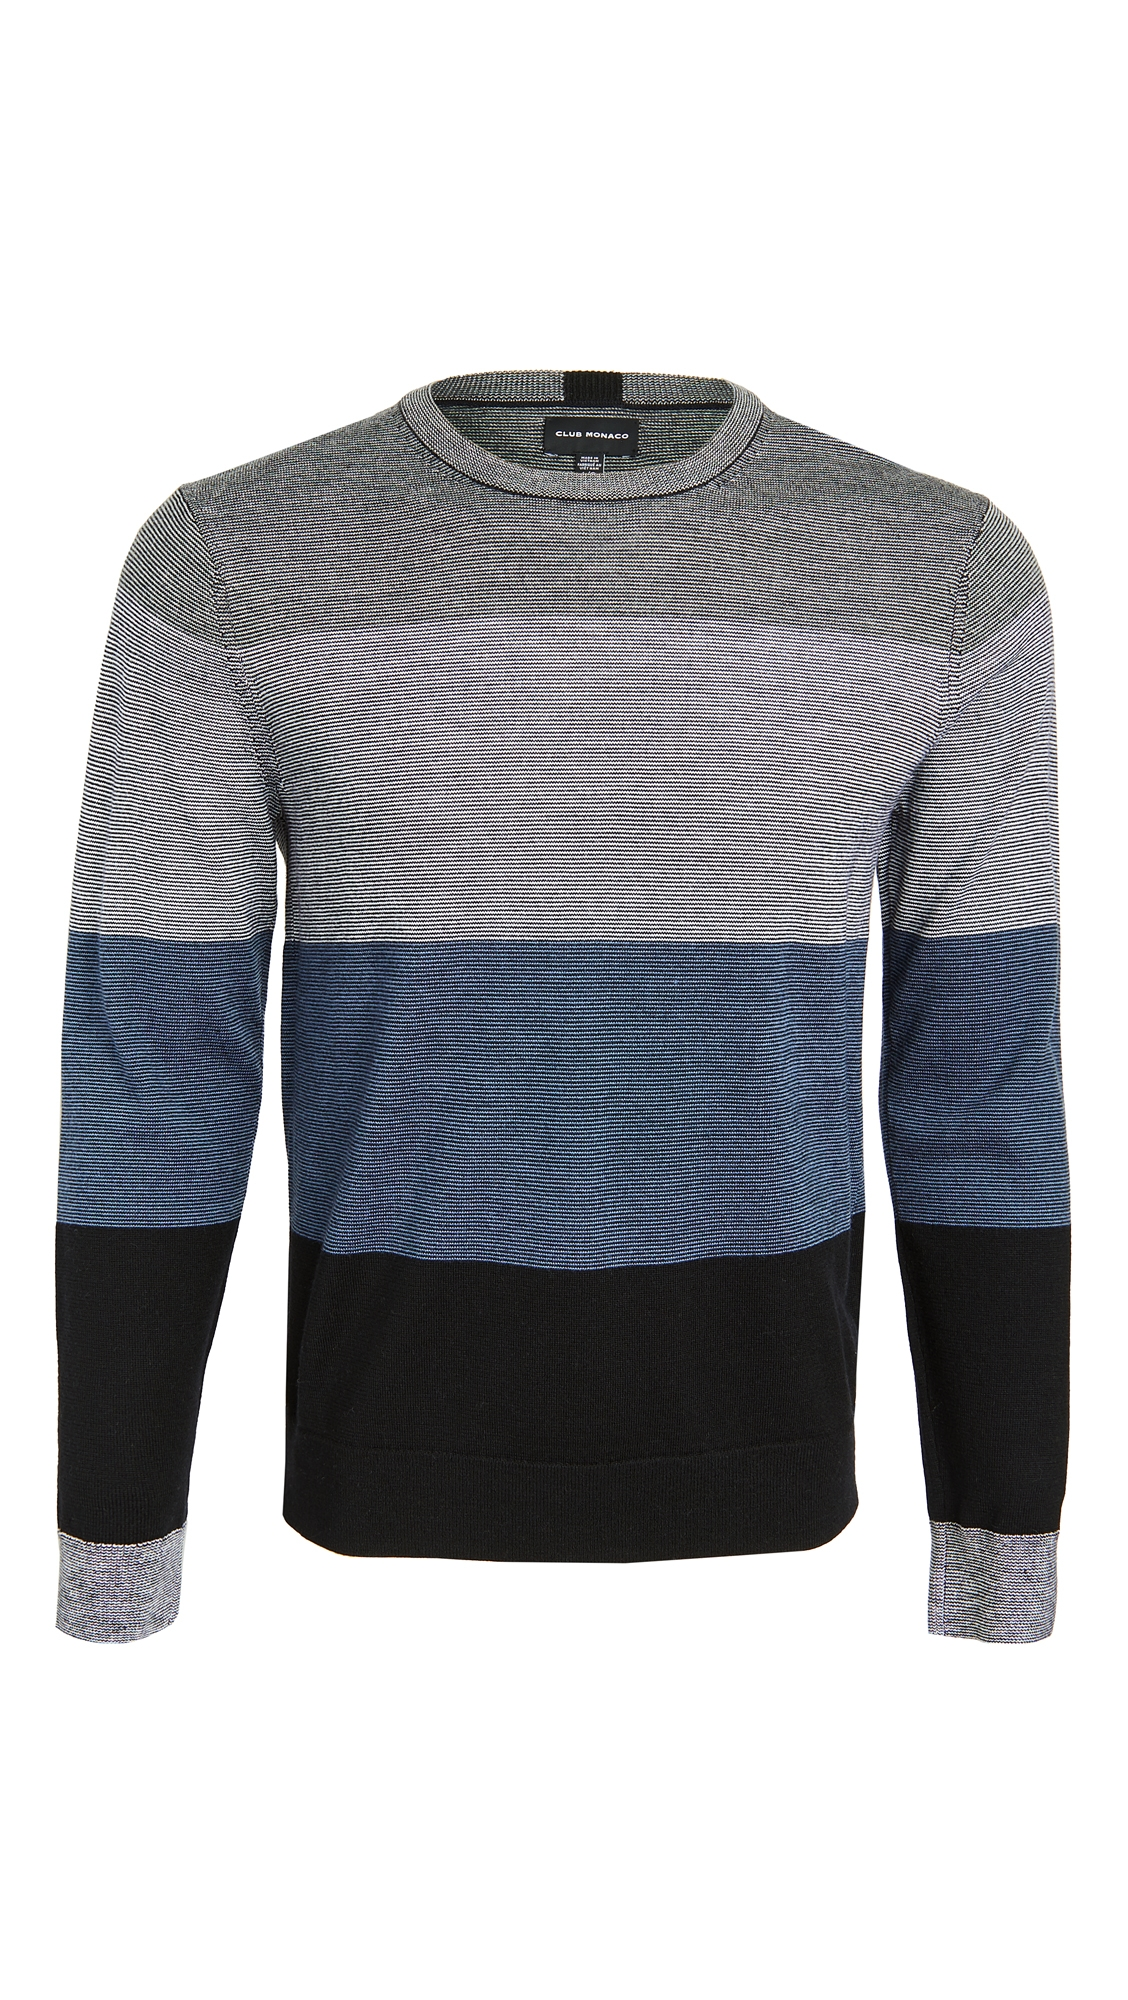 Club Monaco Block Merino Crew Neck Sweater